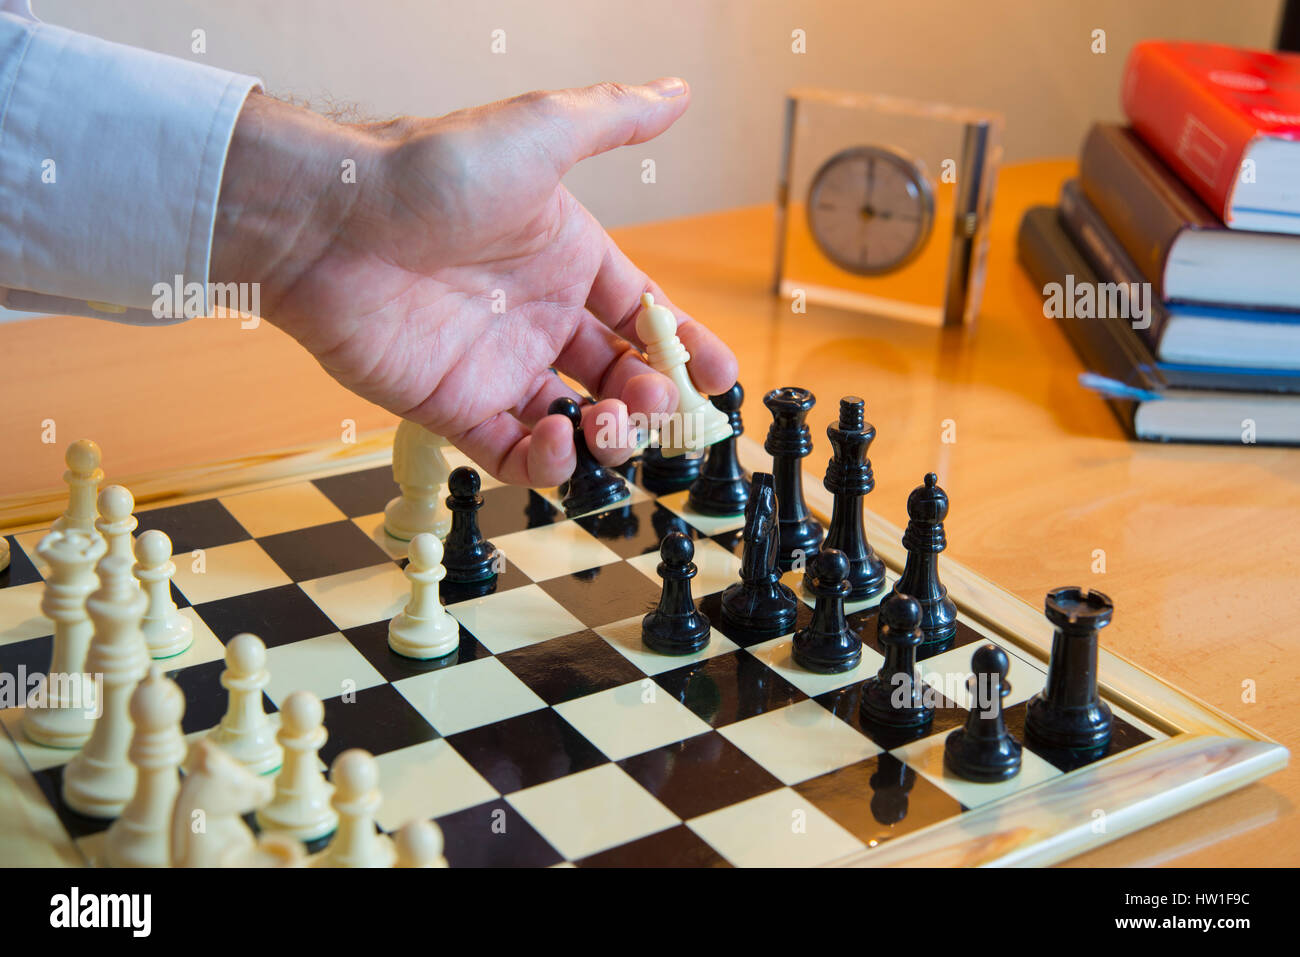 Man's hand playing chess. - Stock Image